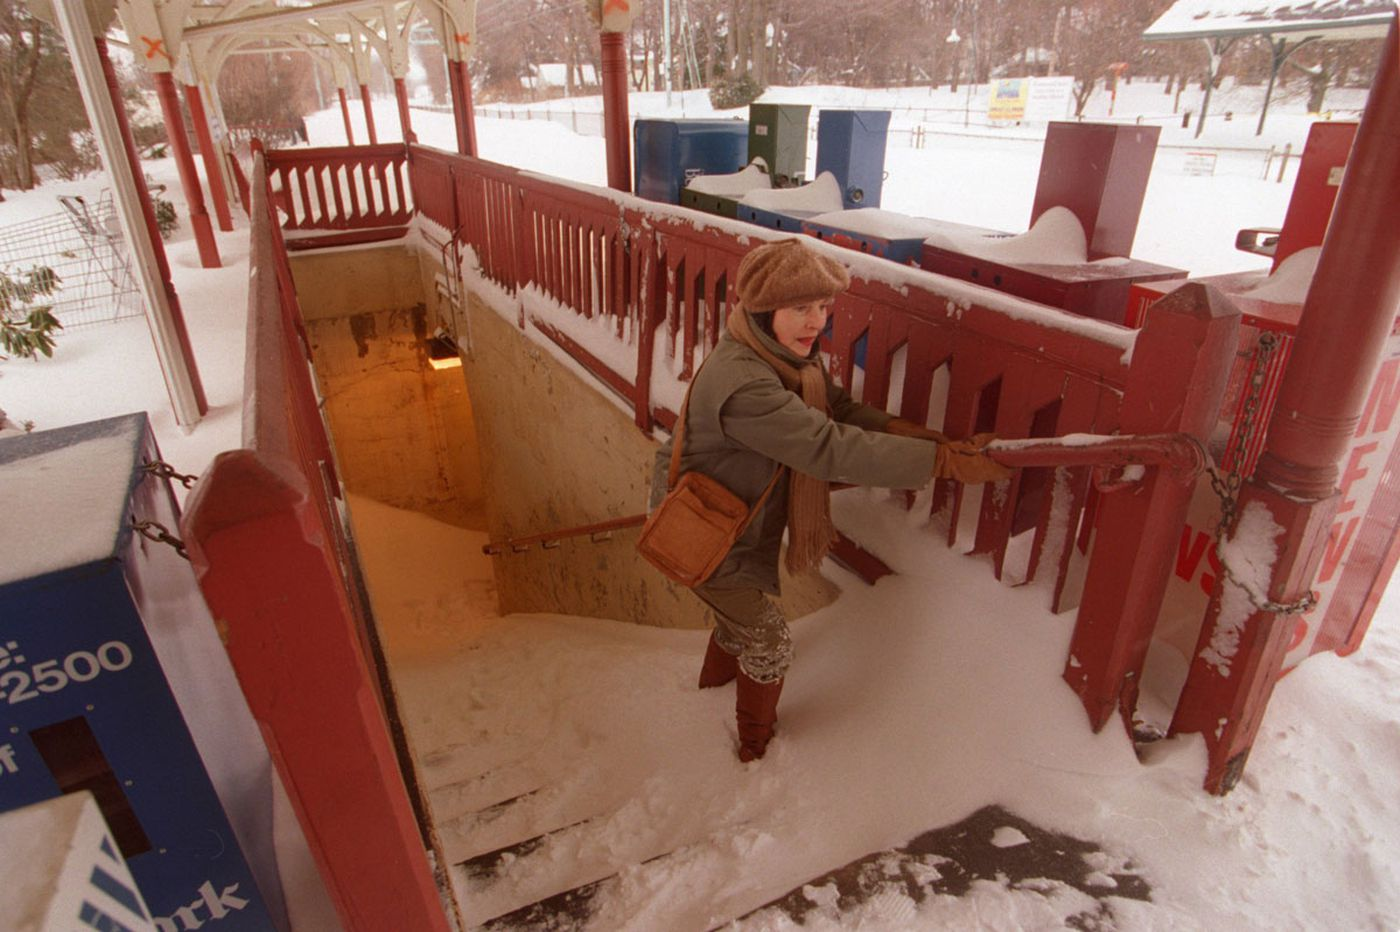 30.7 inches fell upon Philly 25 years ago, and snow hasn't been the same since